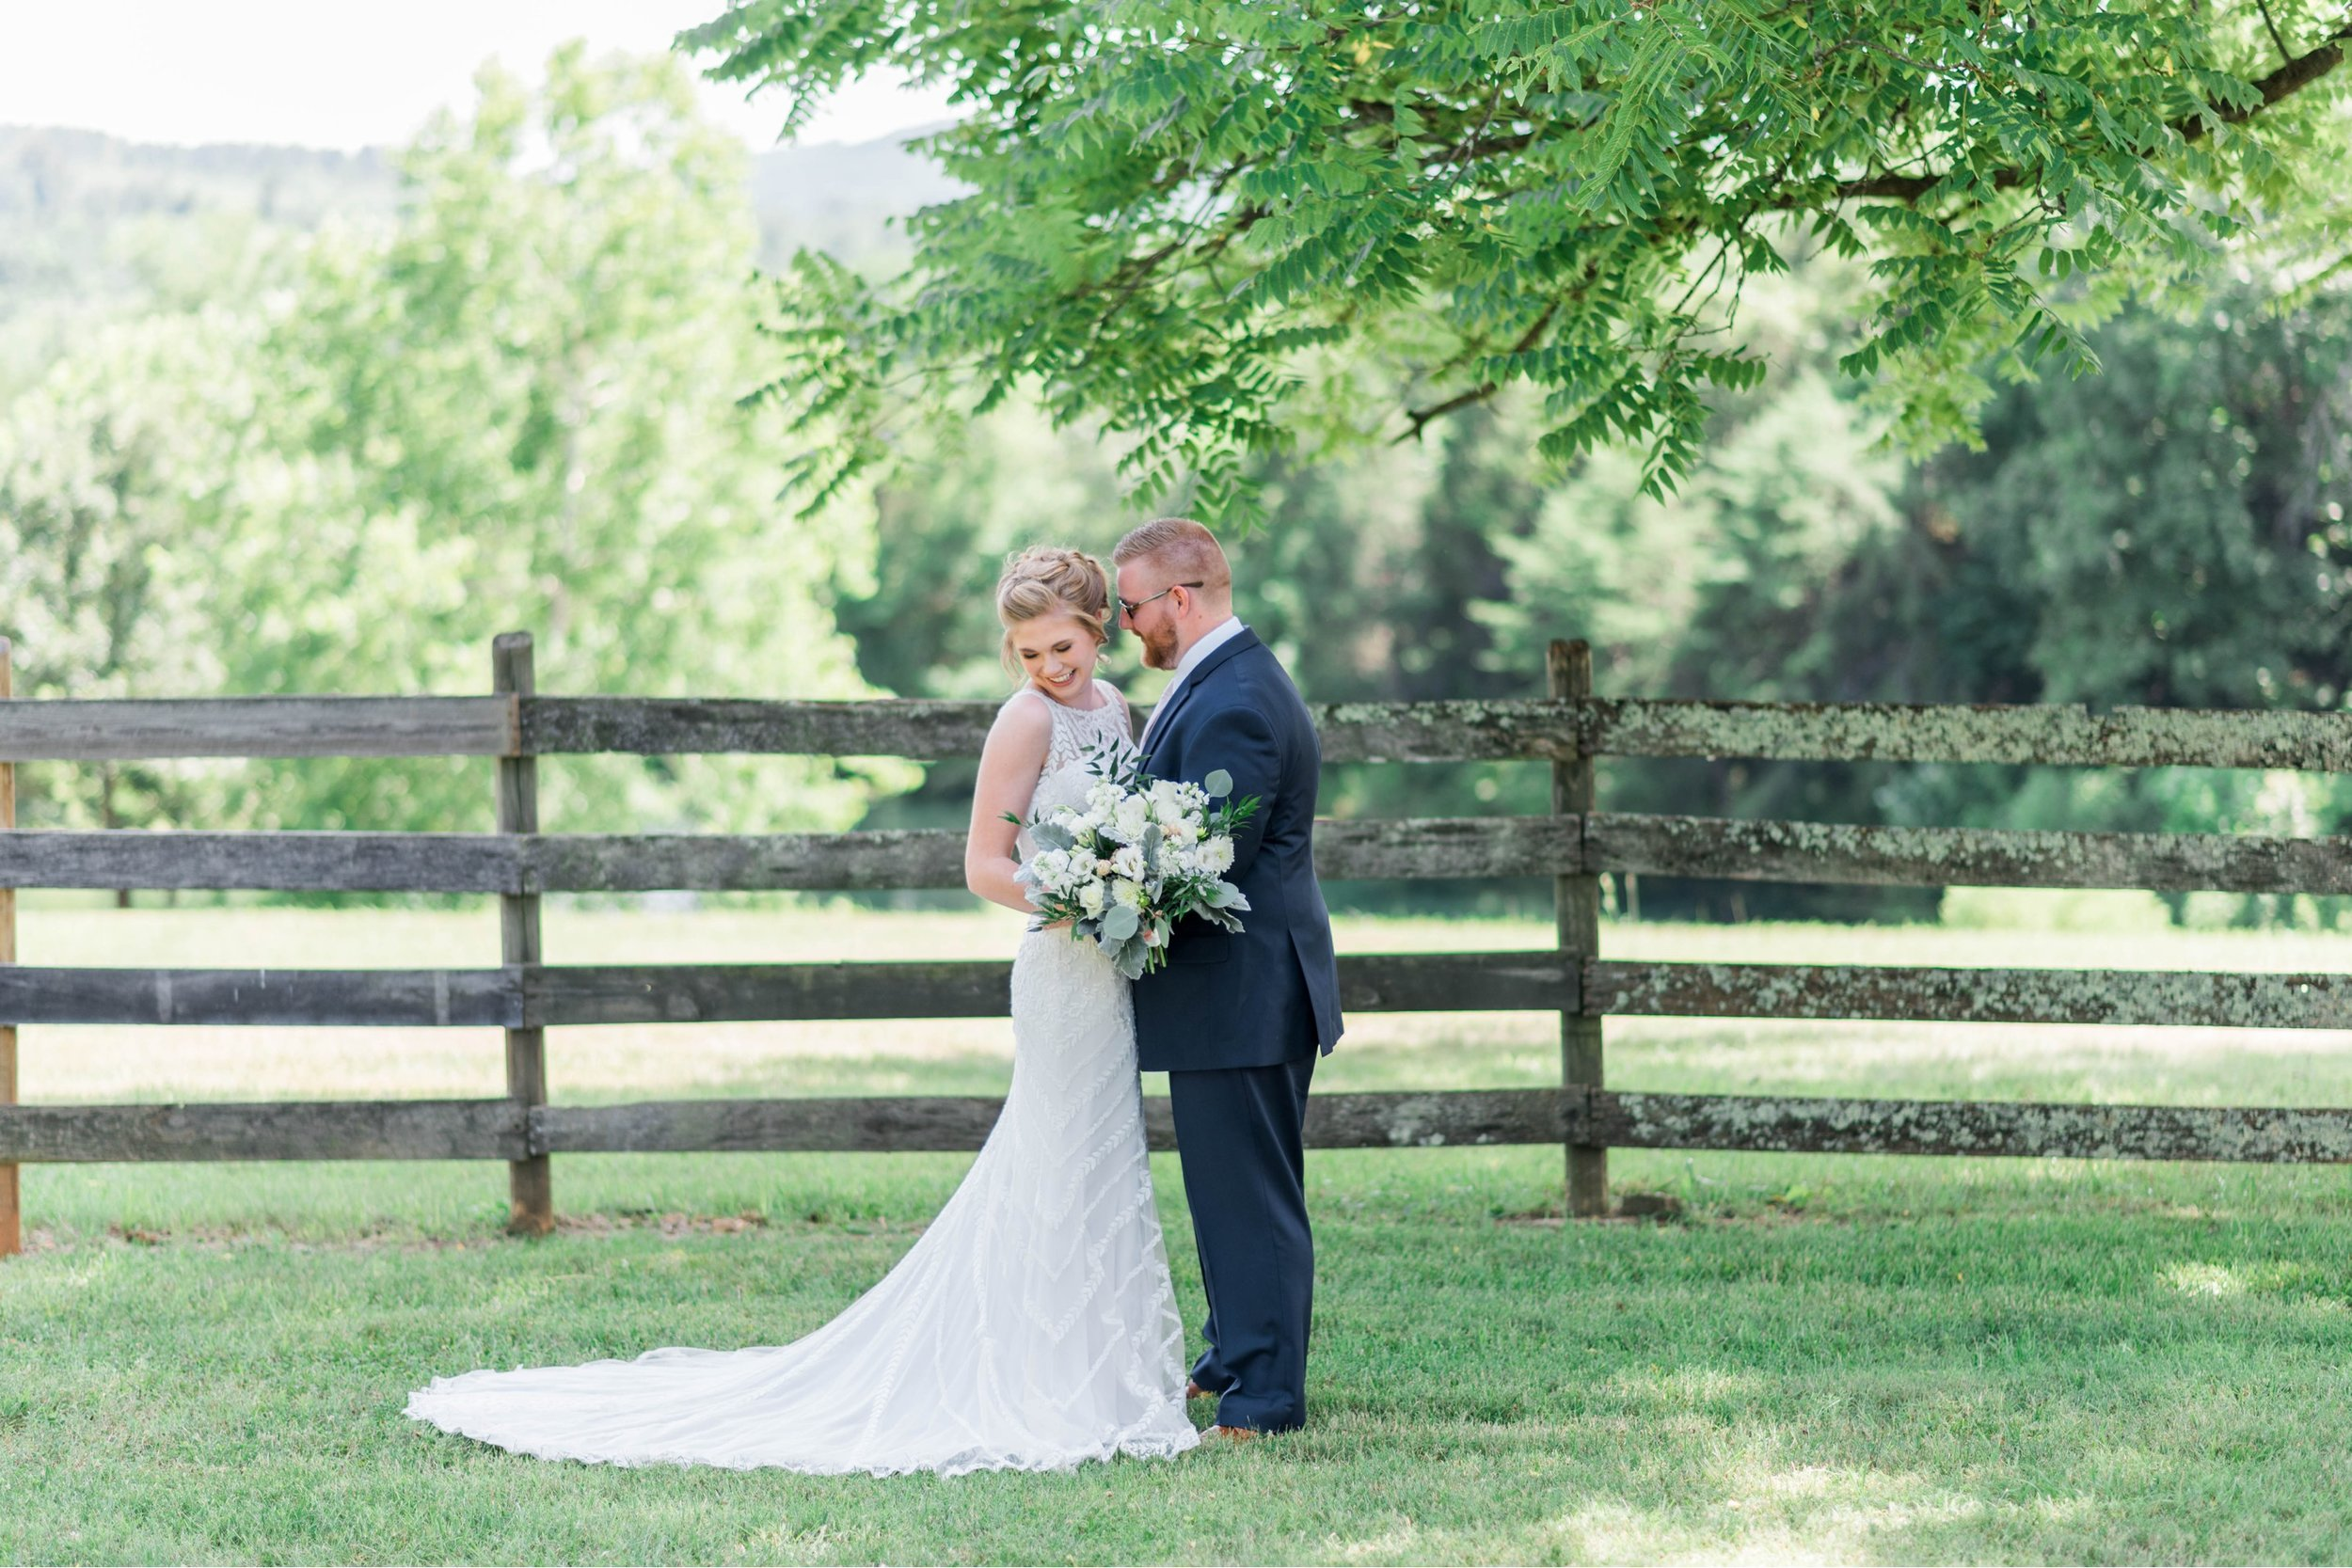 SorellaFarms_VirginiaWeddingPhotographer_BarnWedding_Lynchburgweddingphotographer_DanielleTyler 33.jpg